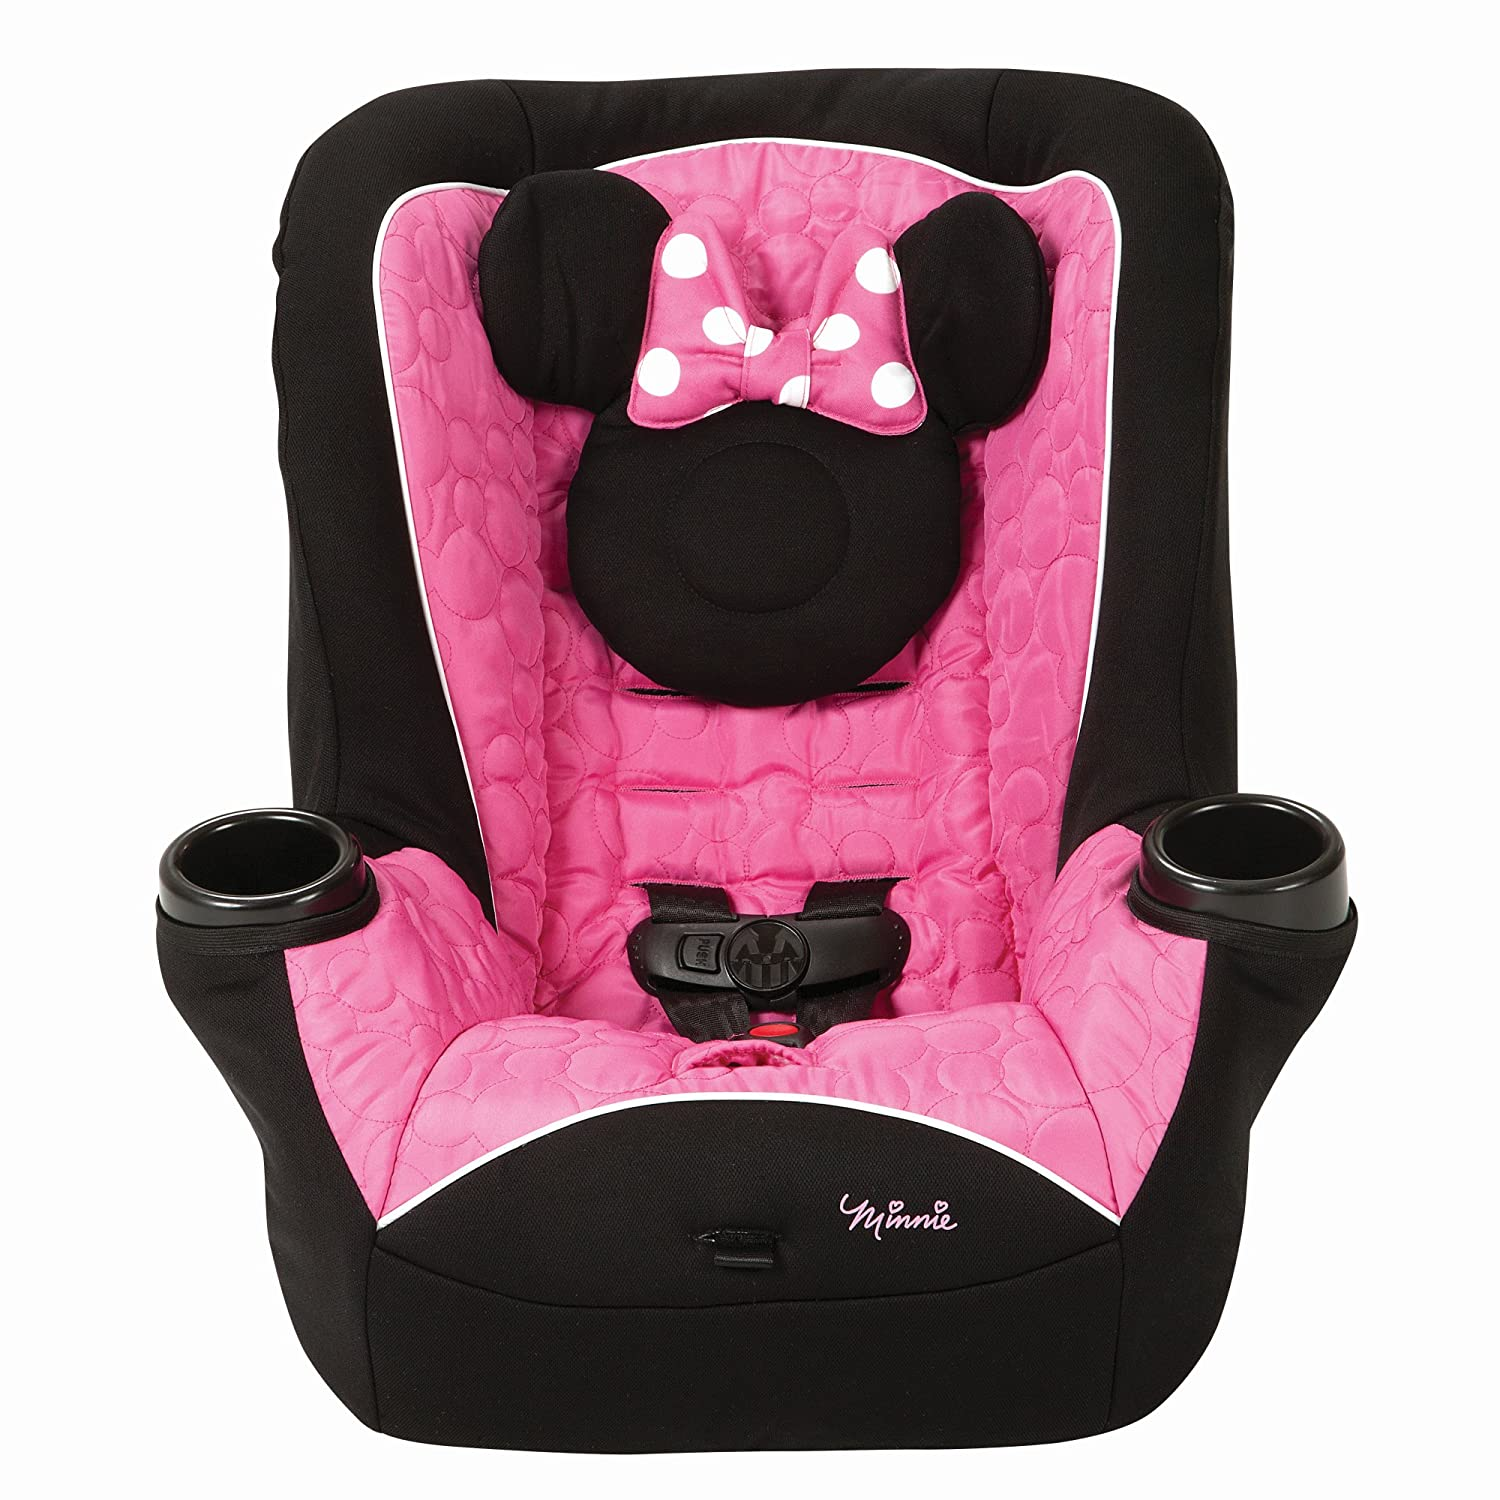 Disney 22237CCLJ Minnie Apt 50 Seat, Heather Granite Dorel Juvenile